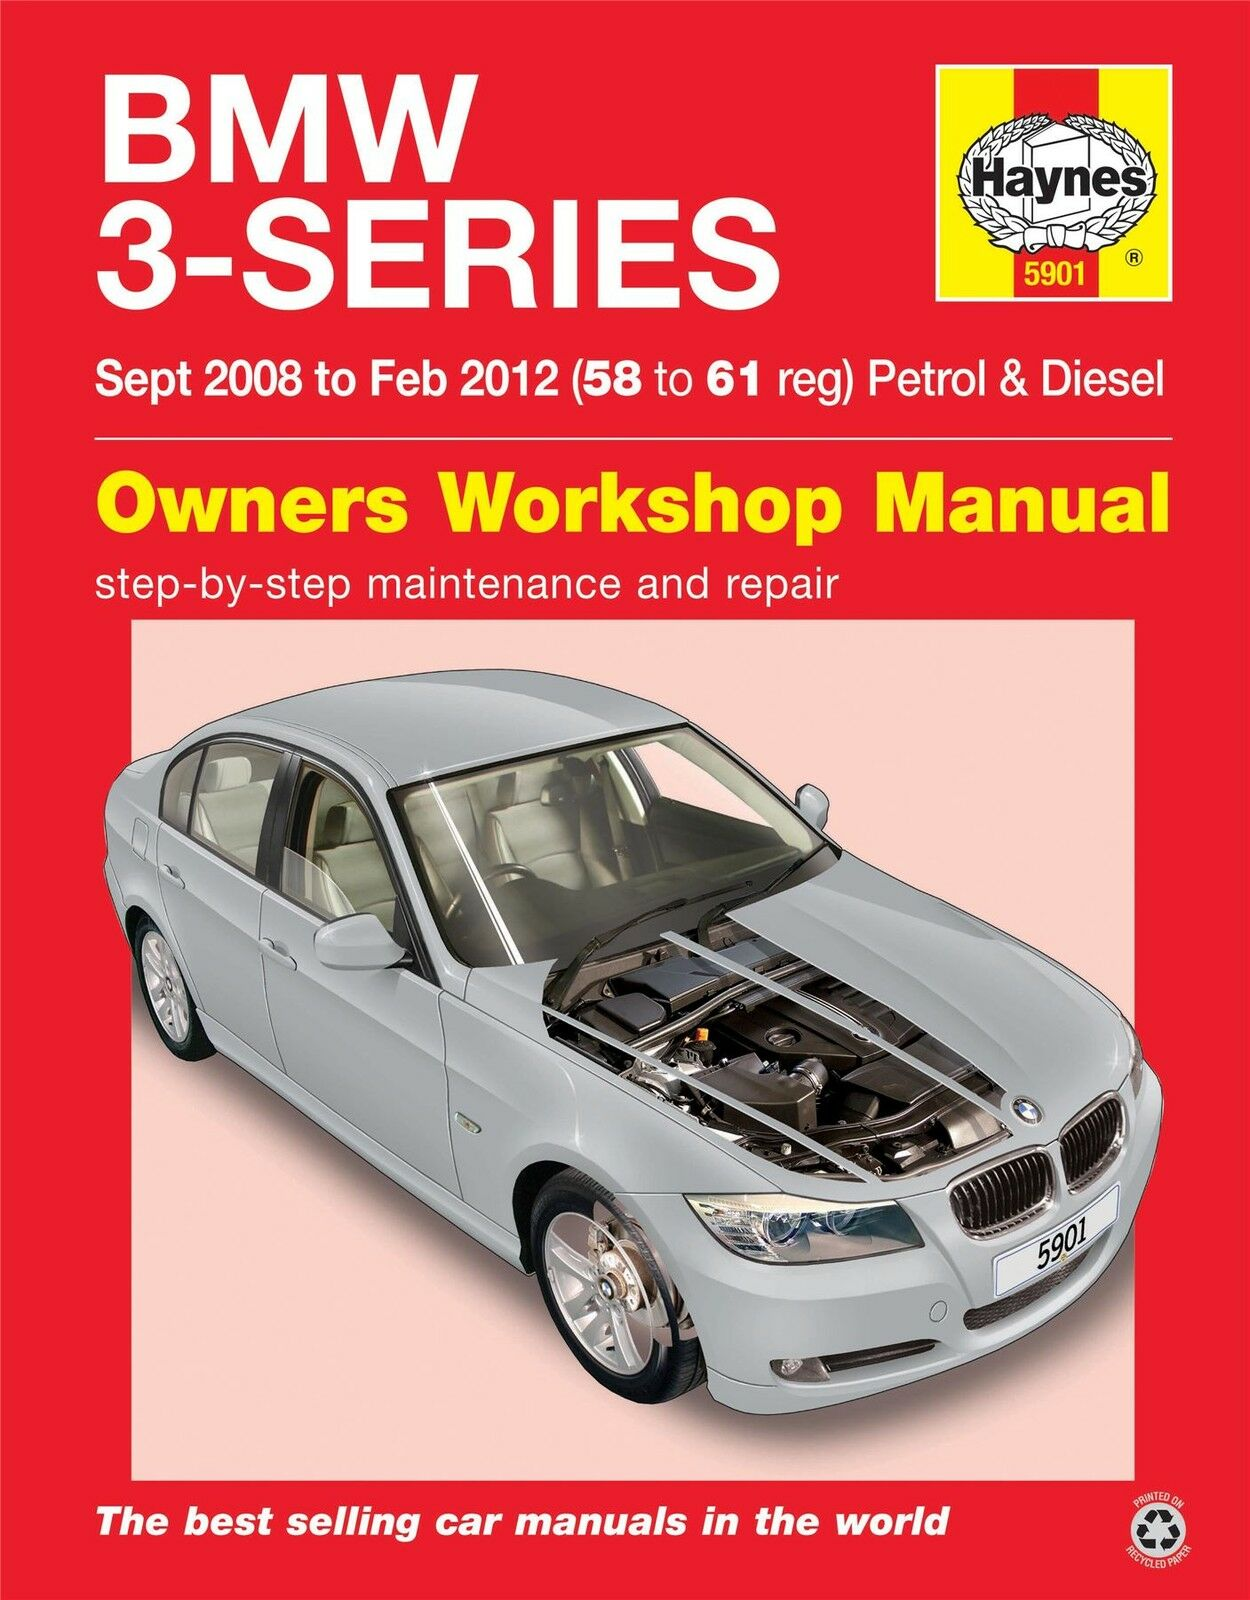 haynes service repair manual 5901 bmw 3 series 58 to 61 picc. Black Bedroom Furniture Sets. Home Design Ideas